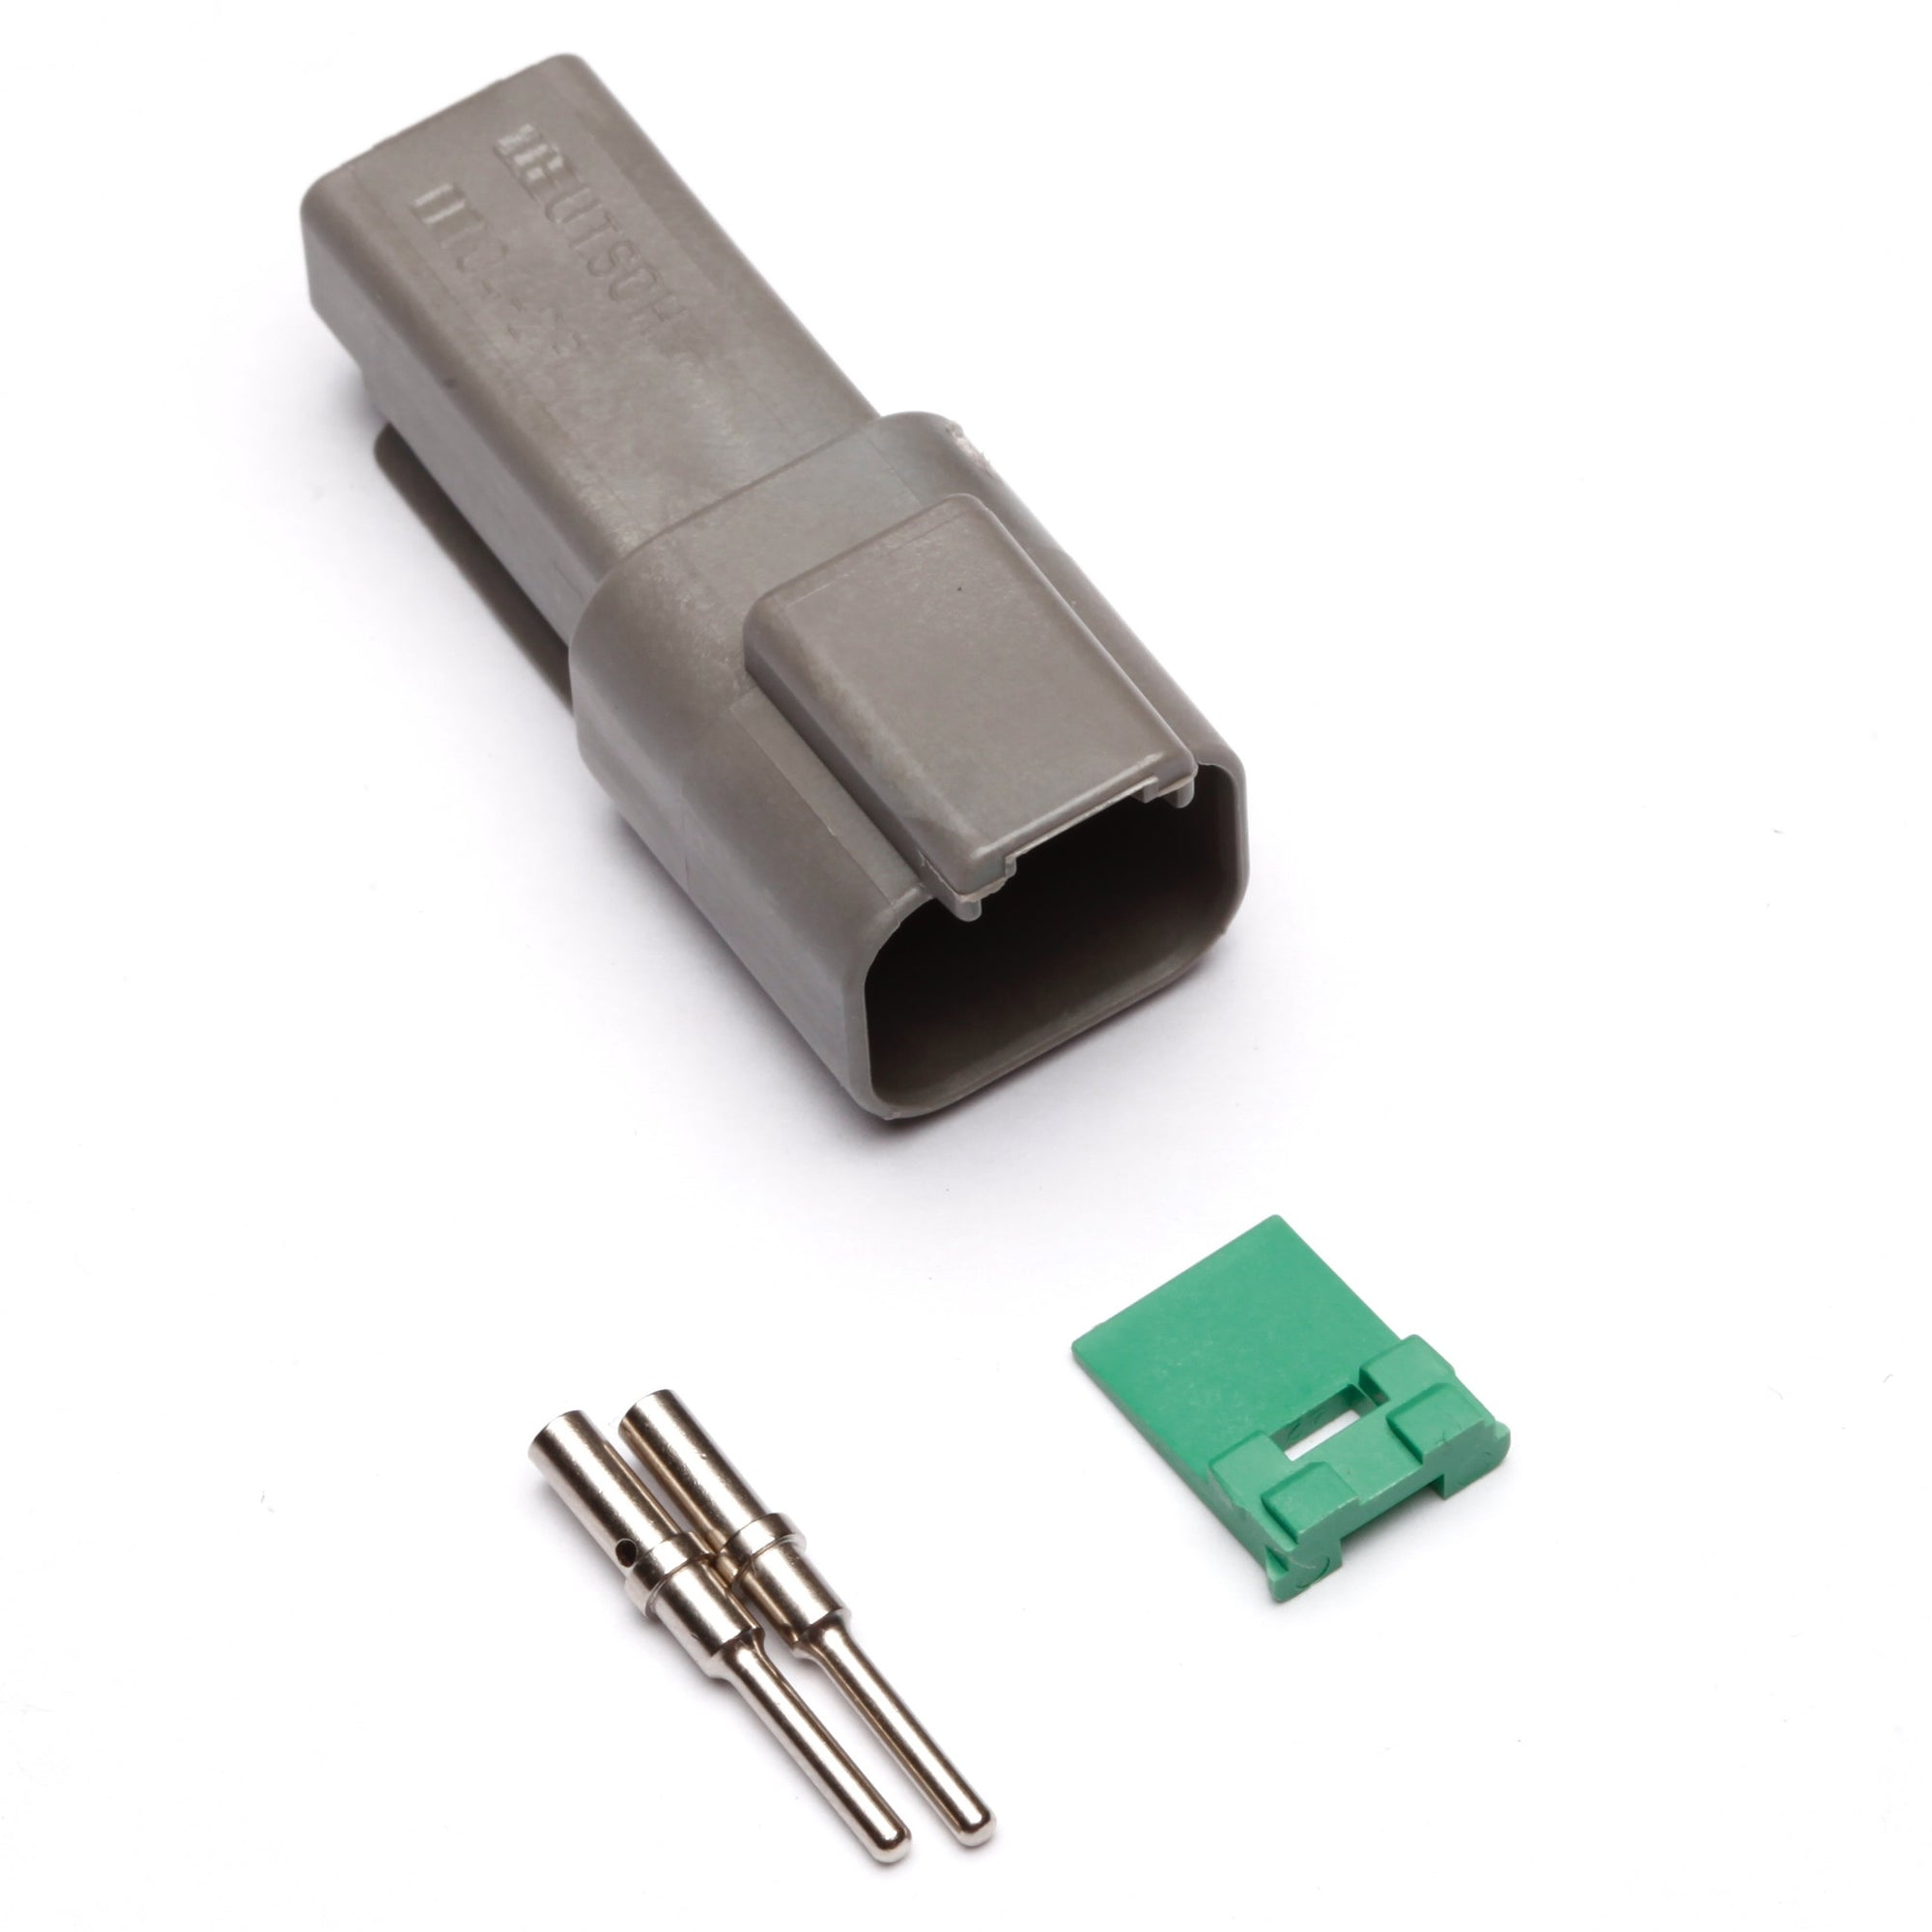 Connectors - DT Receptacle Connector Kit